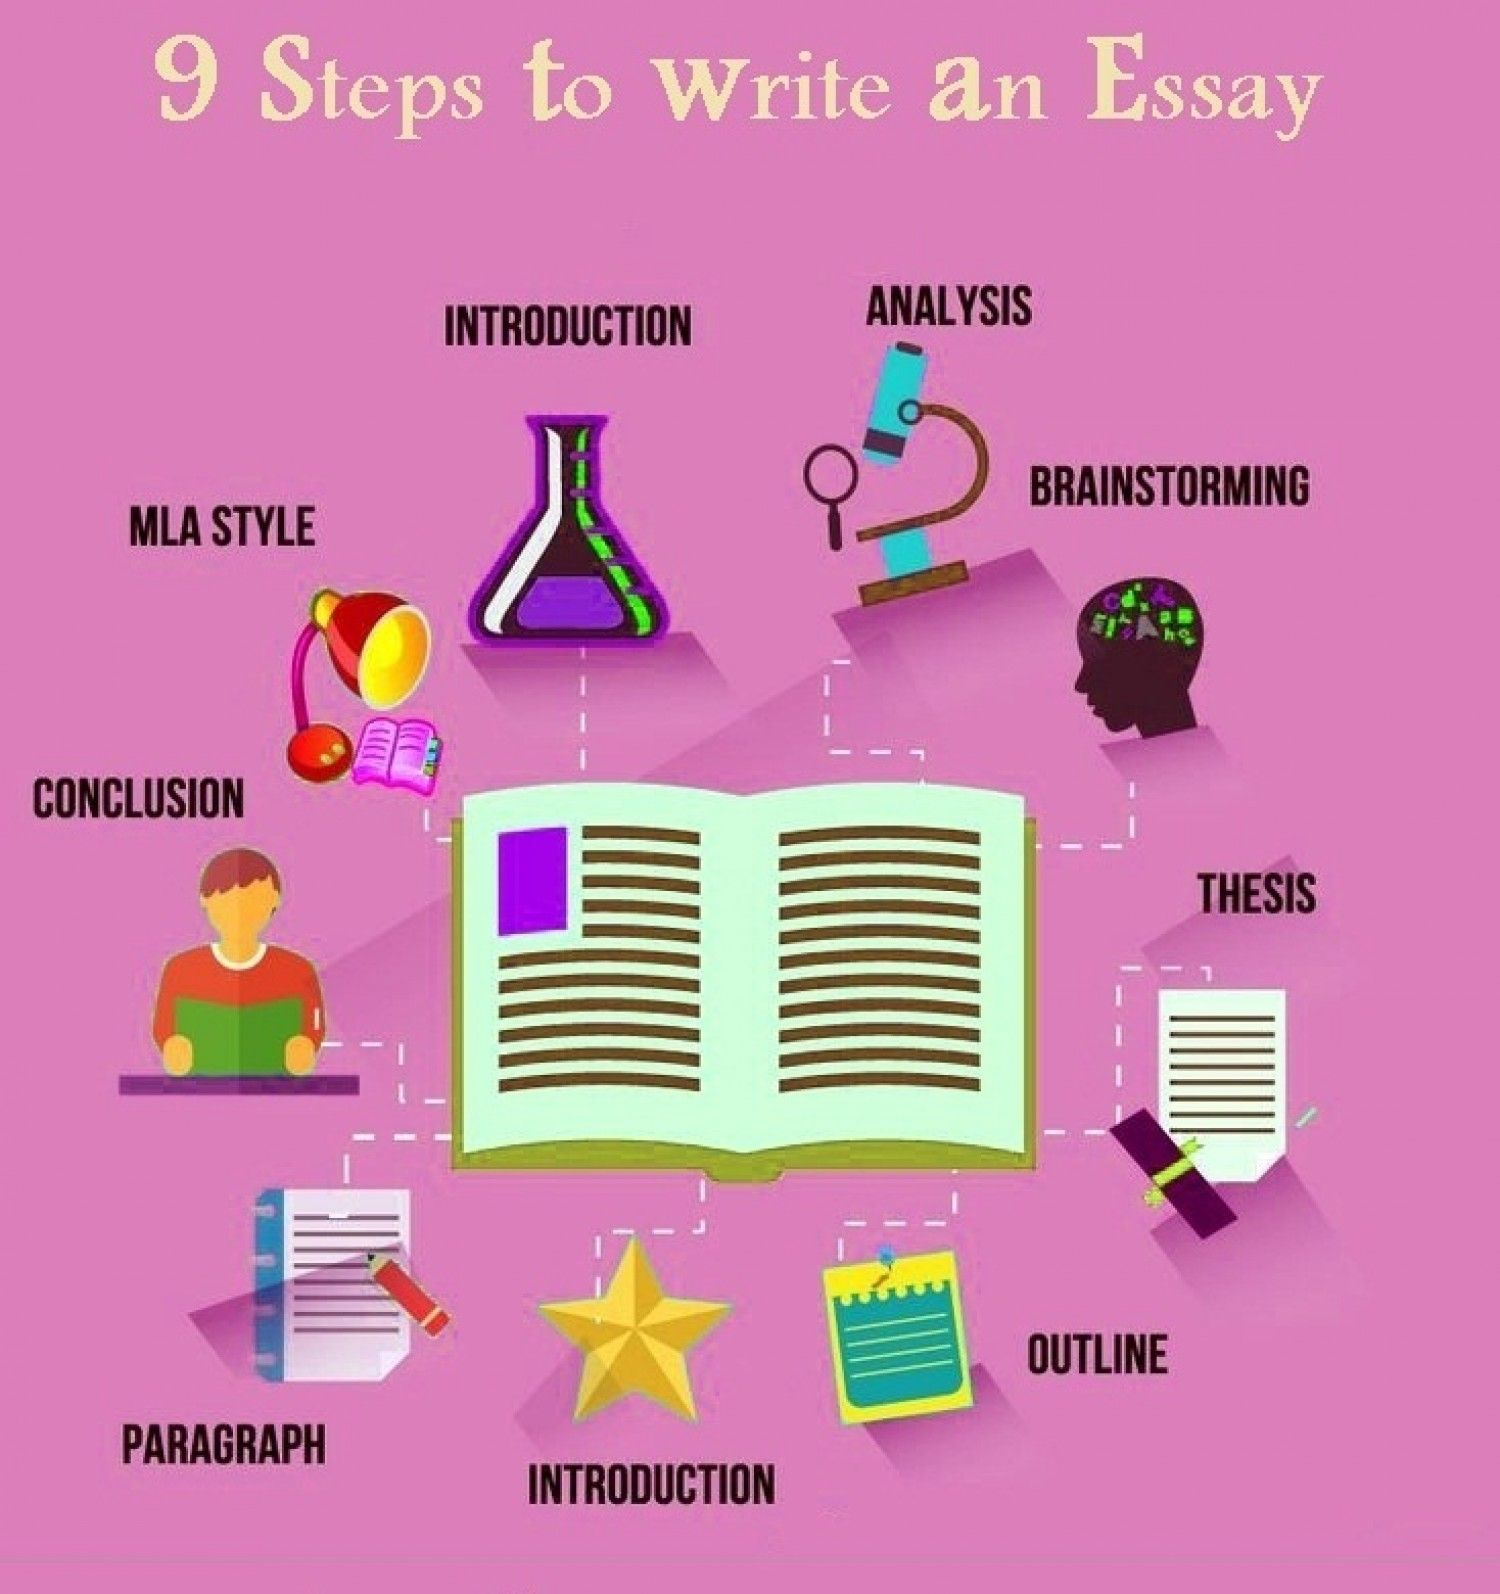 Essays are the most divergent segments of academic